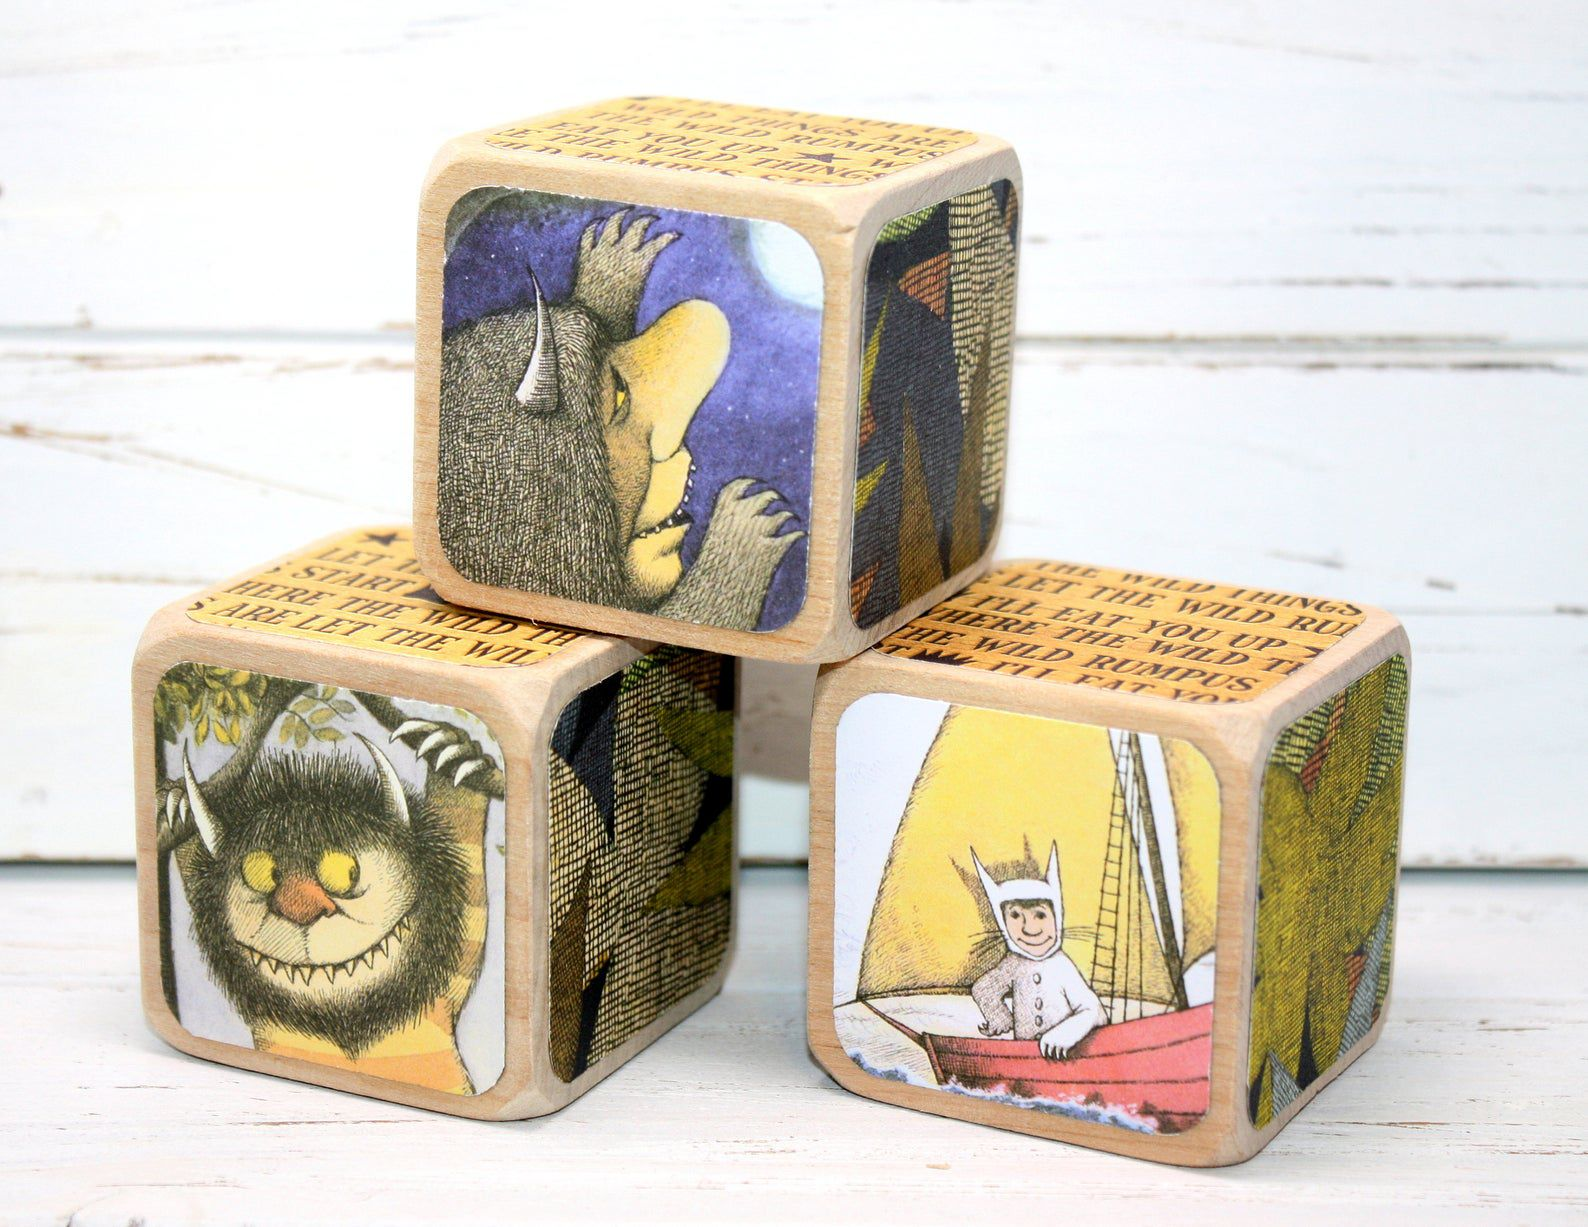 Image of Where The Wild Things Are wooden blocks.